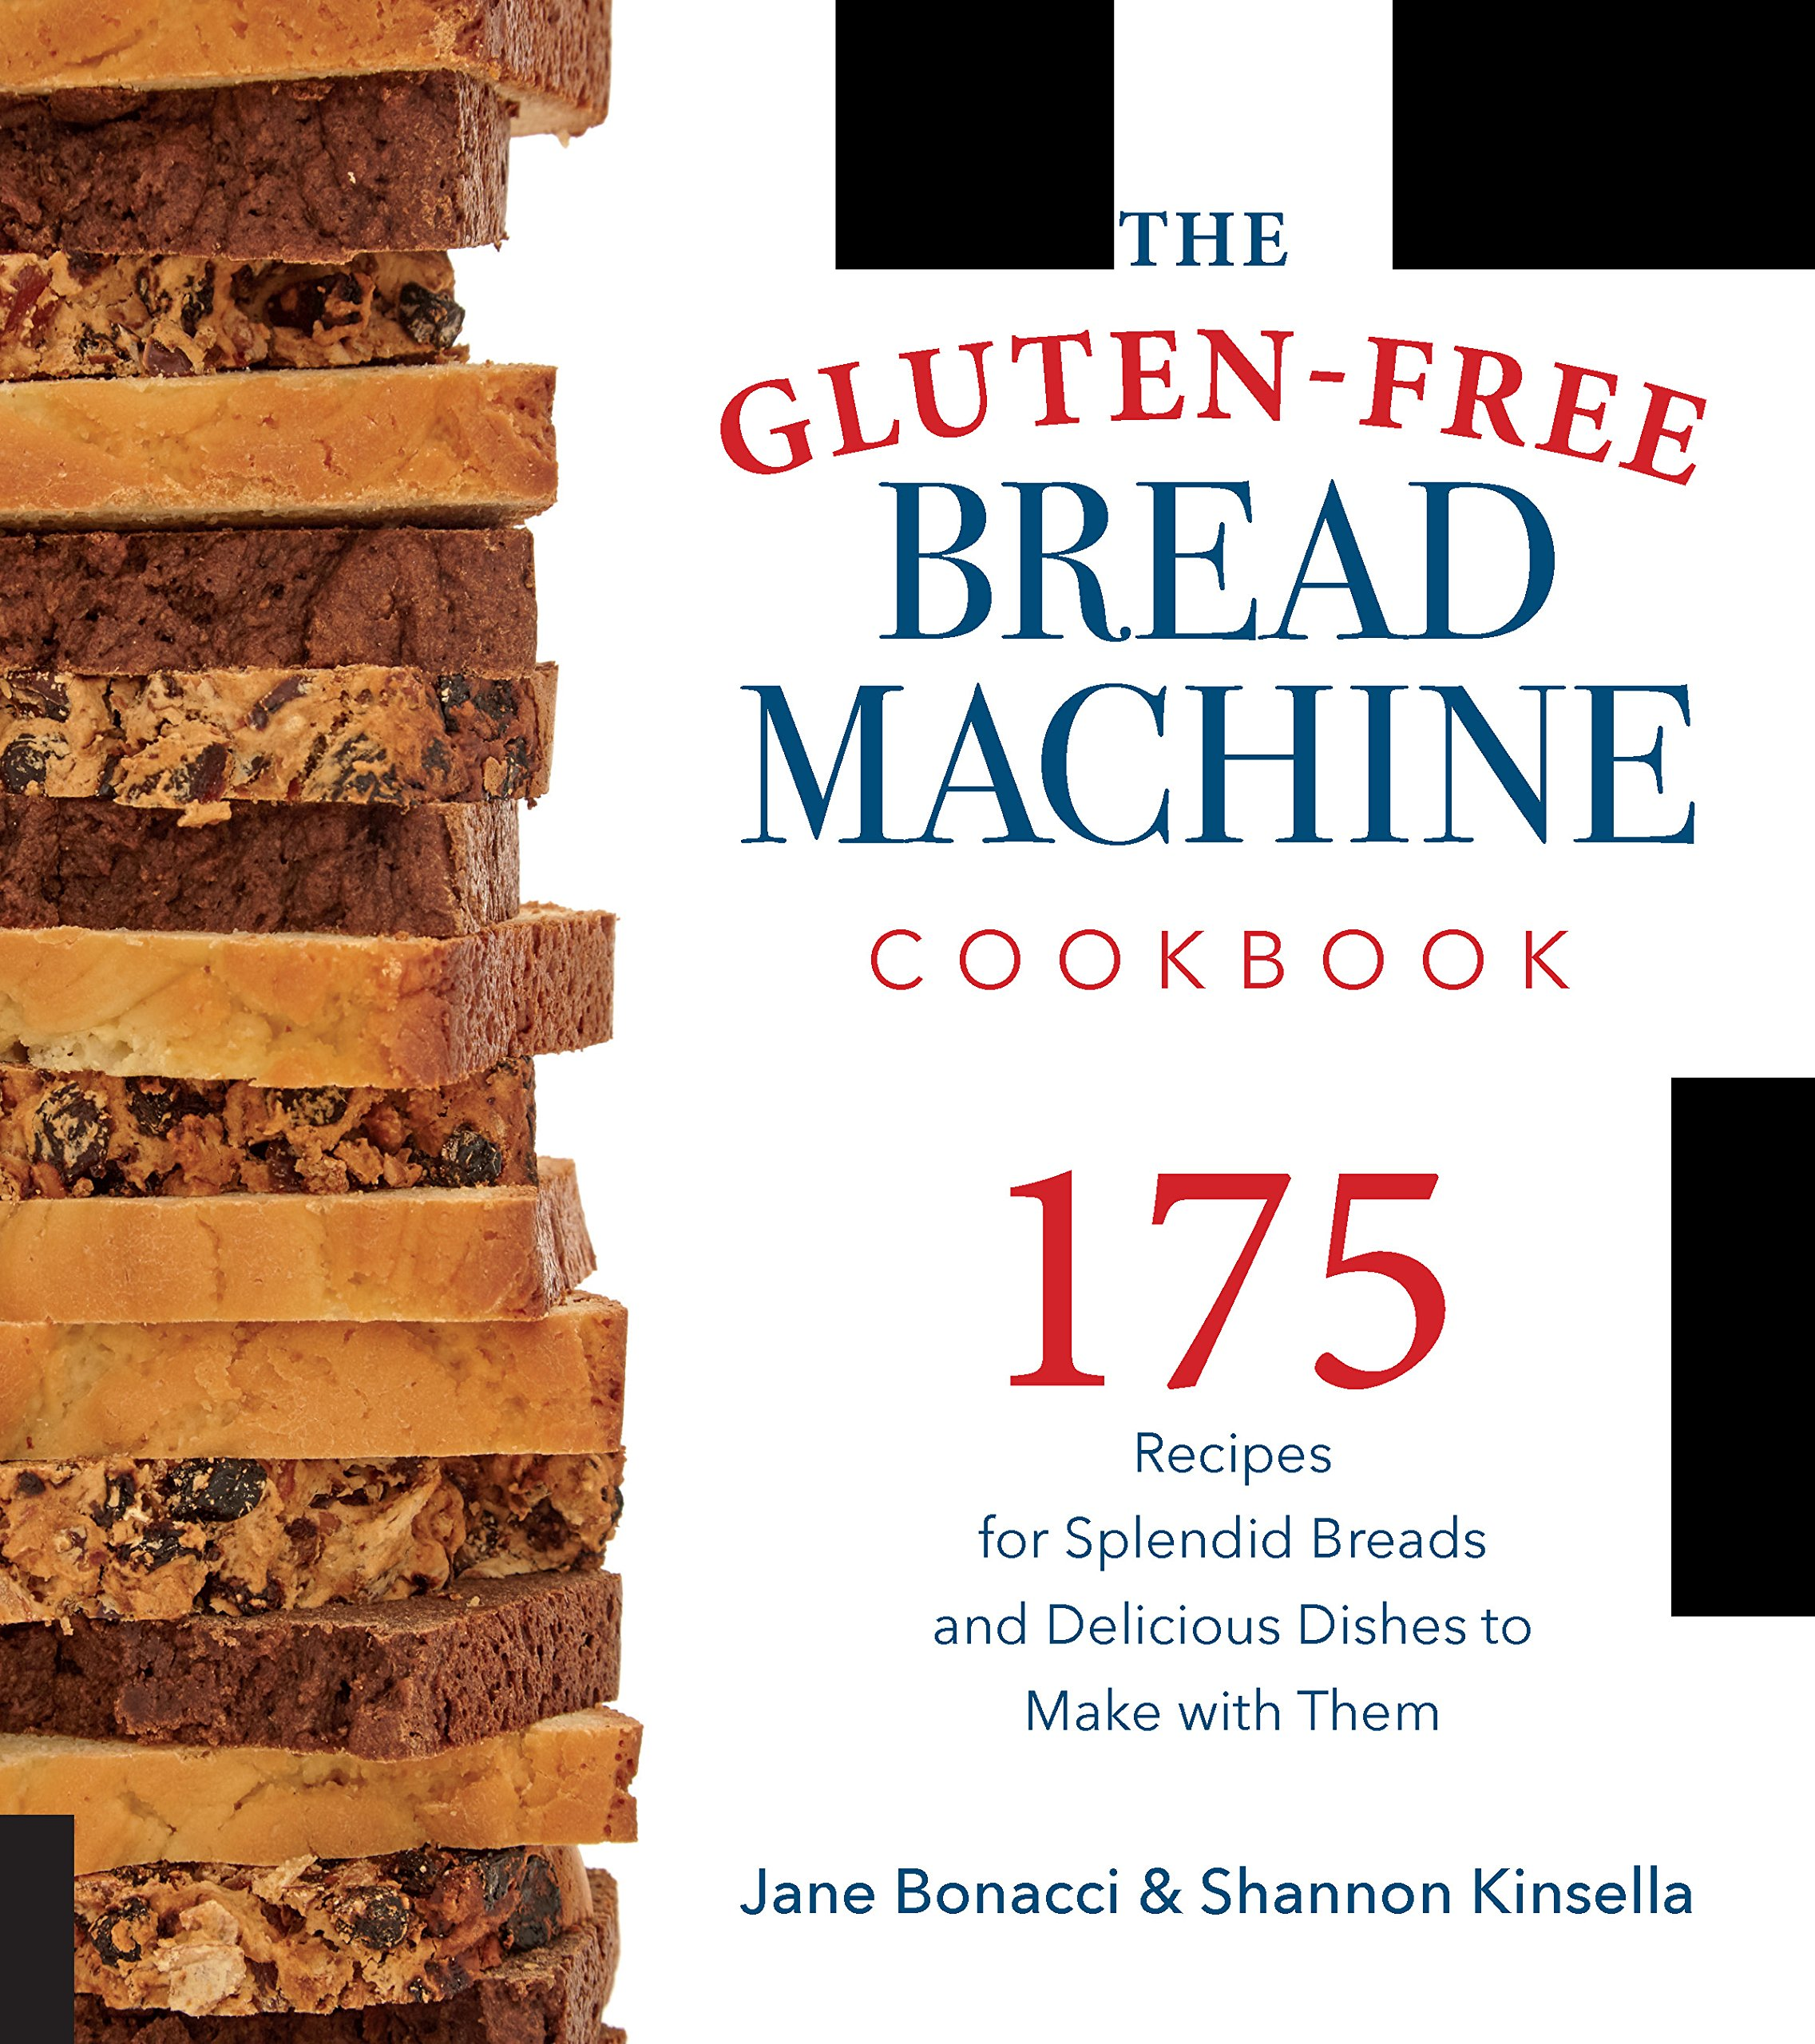 The Gluten-Free Bread Machine Cookbook: 175 Recipes for Splendid Breads and Delicious Dishes to Make with Them Paperback – December 15, 2016 Jane Bonacci Shannon Kinsella Harvard Common Press 1558327967